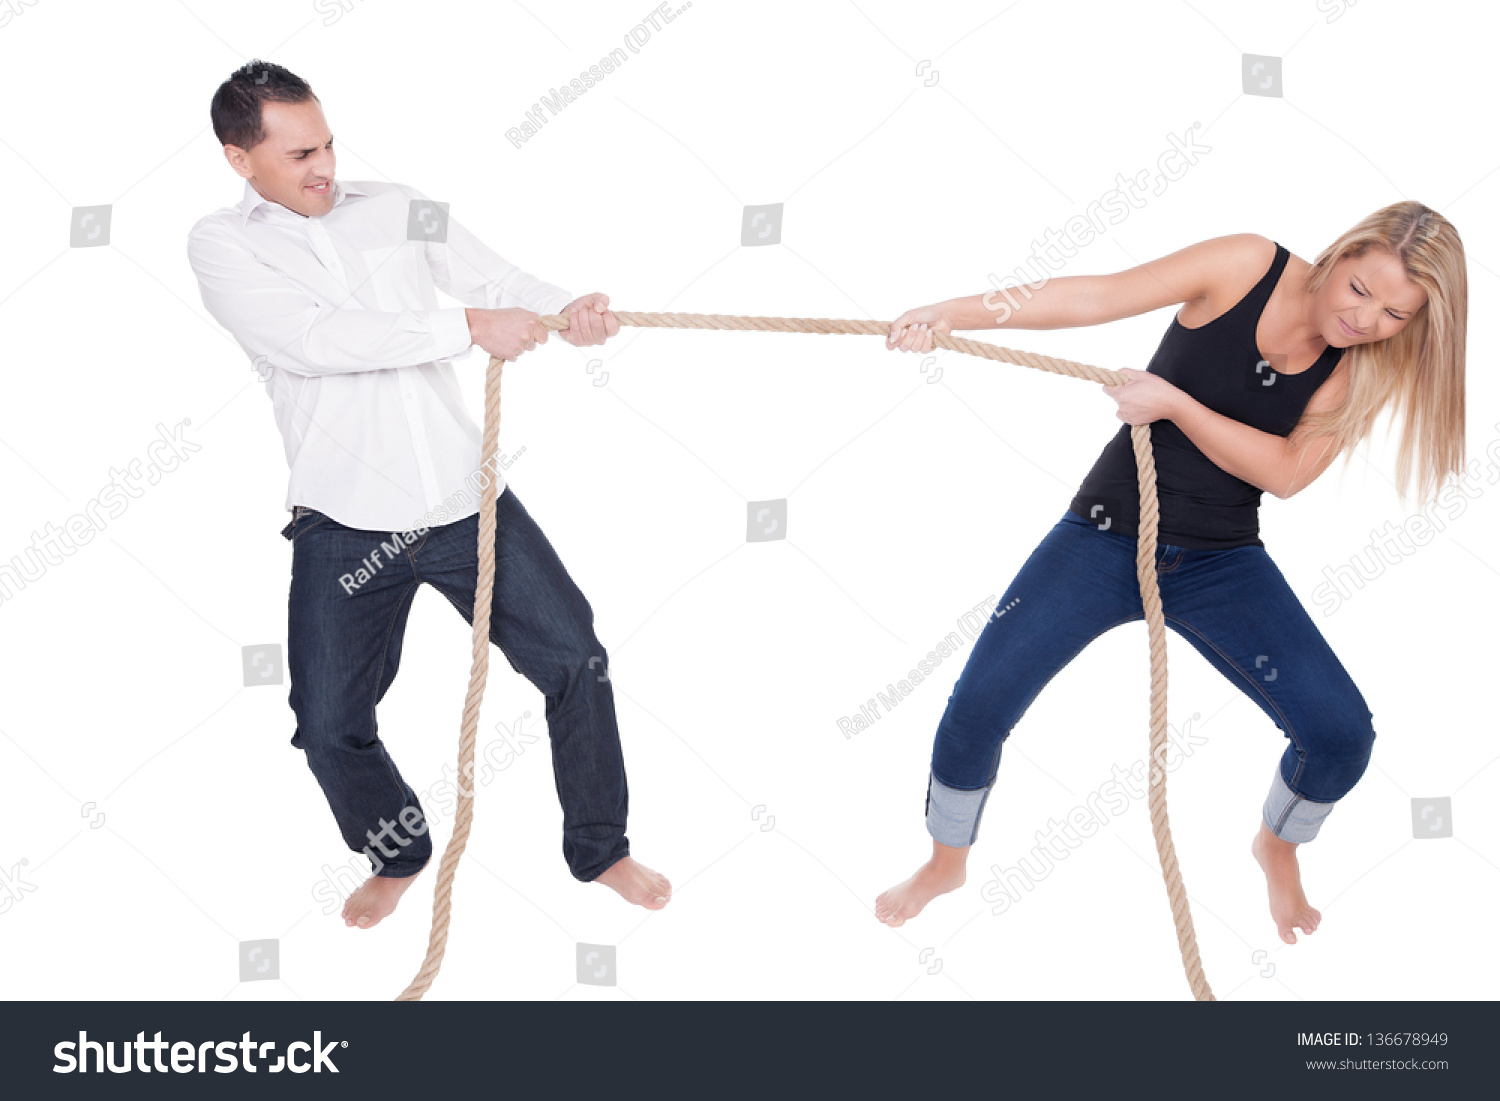 Grimace face clip art stock photo woman pulls a face in upset - Man And Woman Having A Tug Of War Each Leaning Back And Straining With The Effort